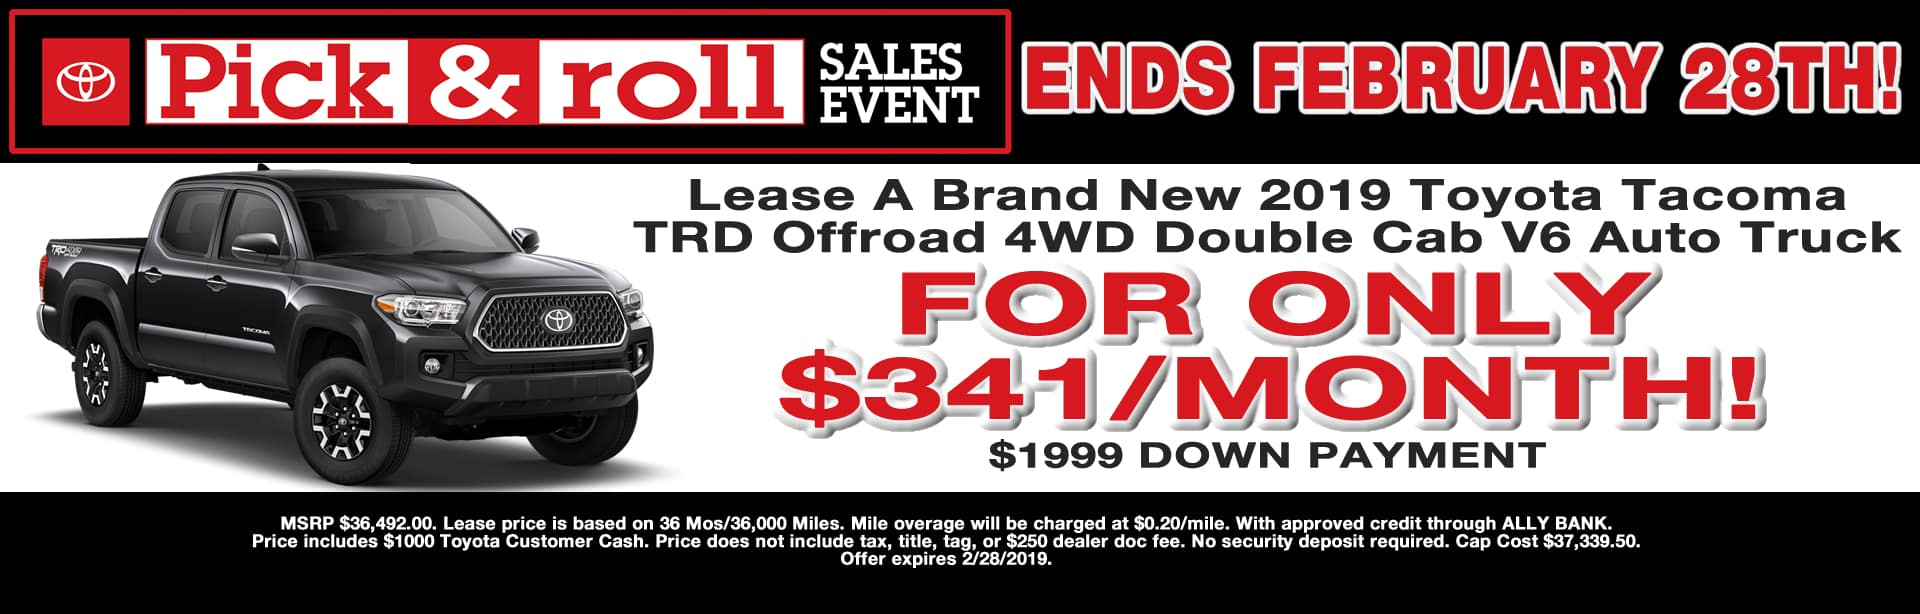 Tacoma TRD Offroad Lease Special Cain Toyota North Canton Ohio